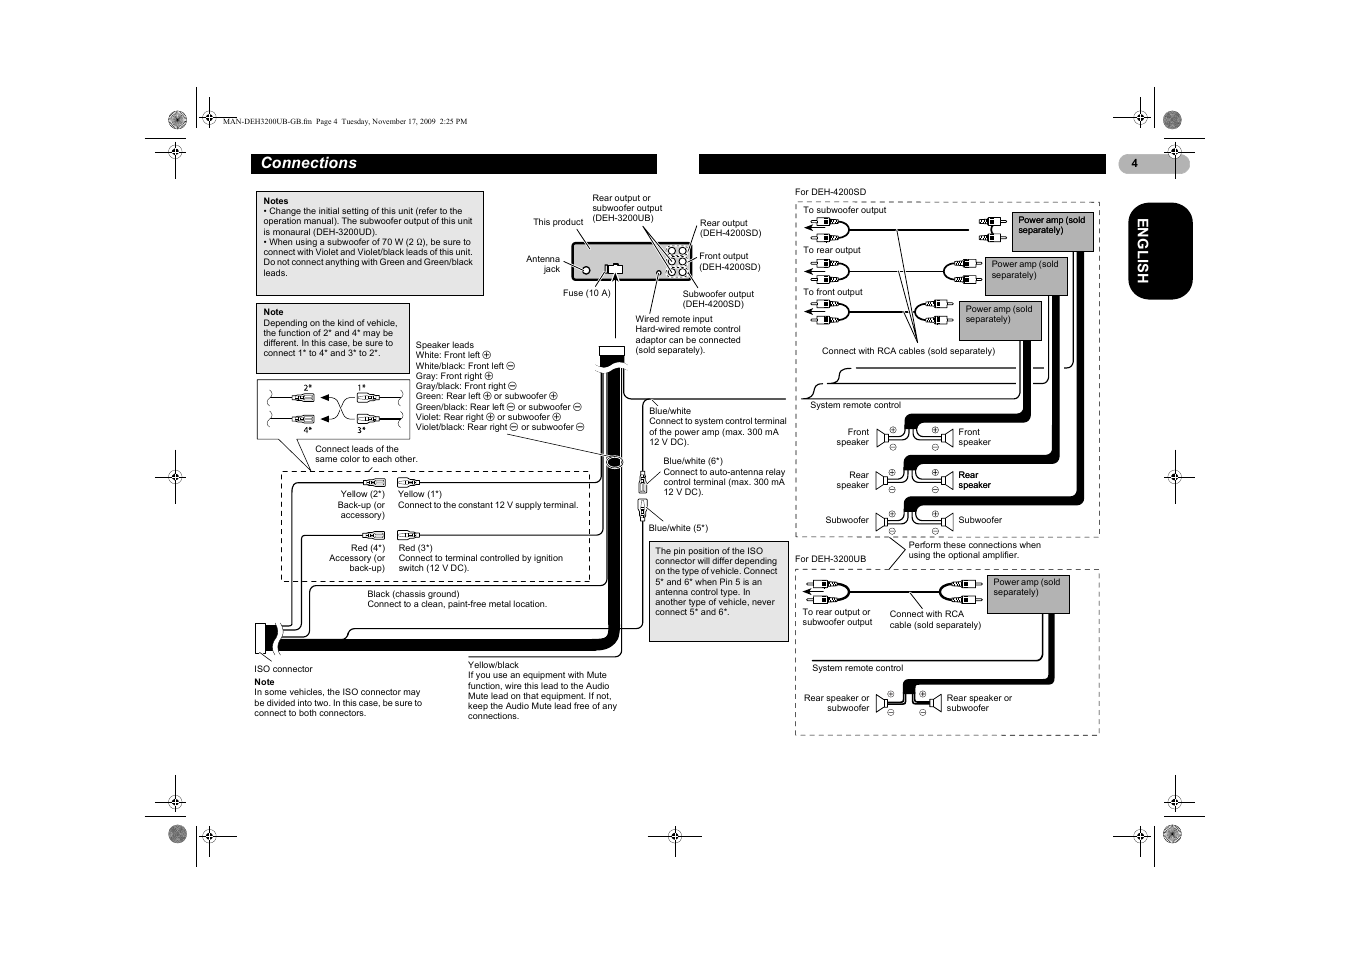 deh 3200ub pioneer wiring diagram wiring library connections en g l is h pioneer deh 3200ub user manual page 4 28